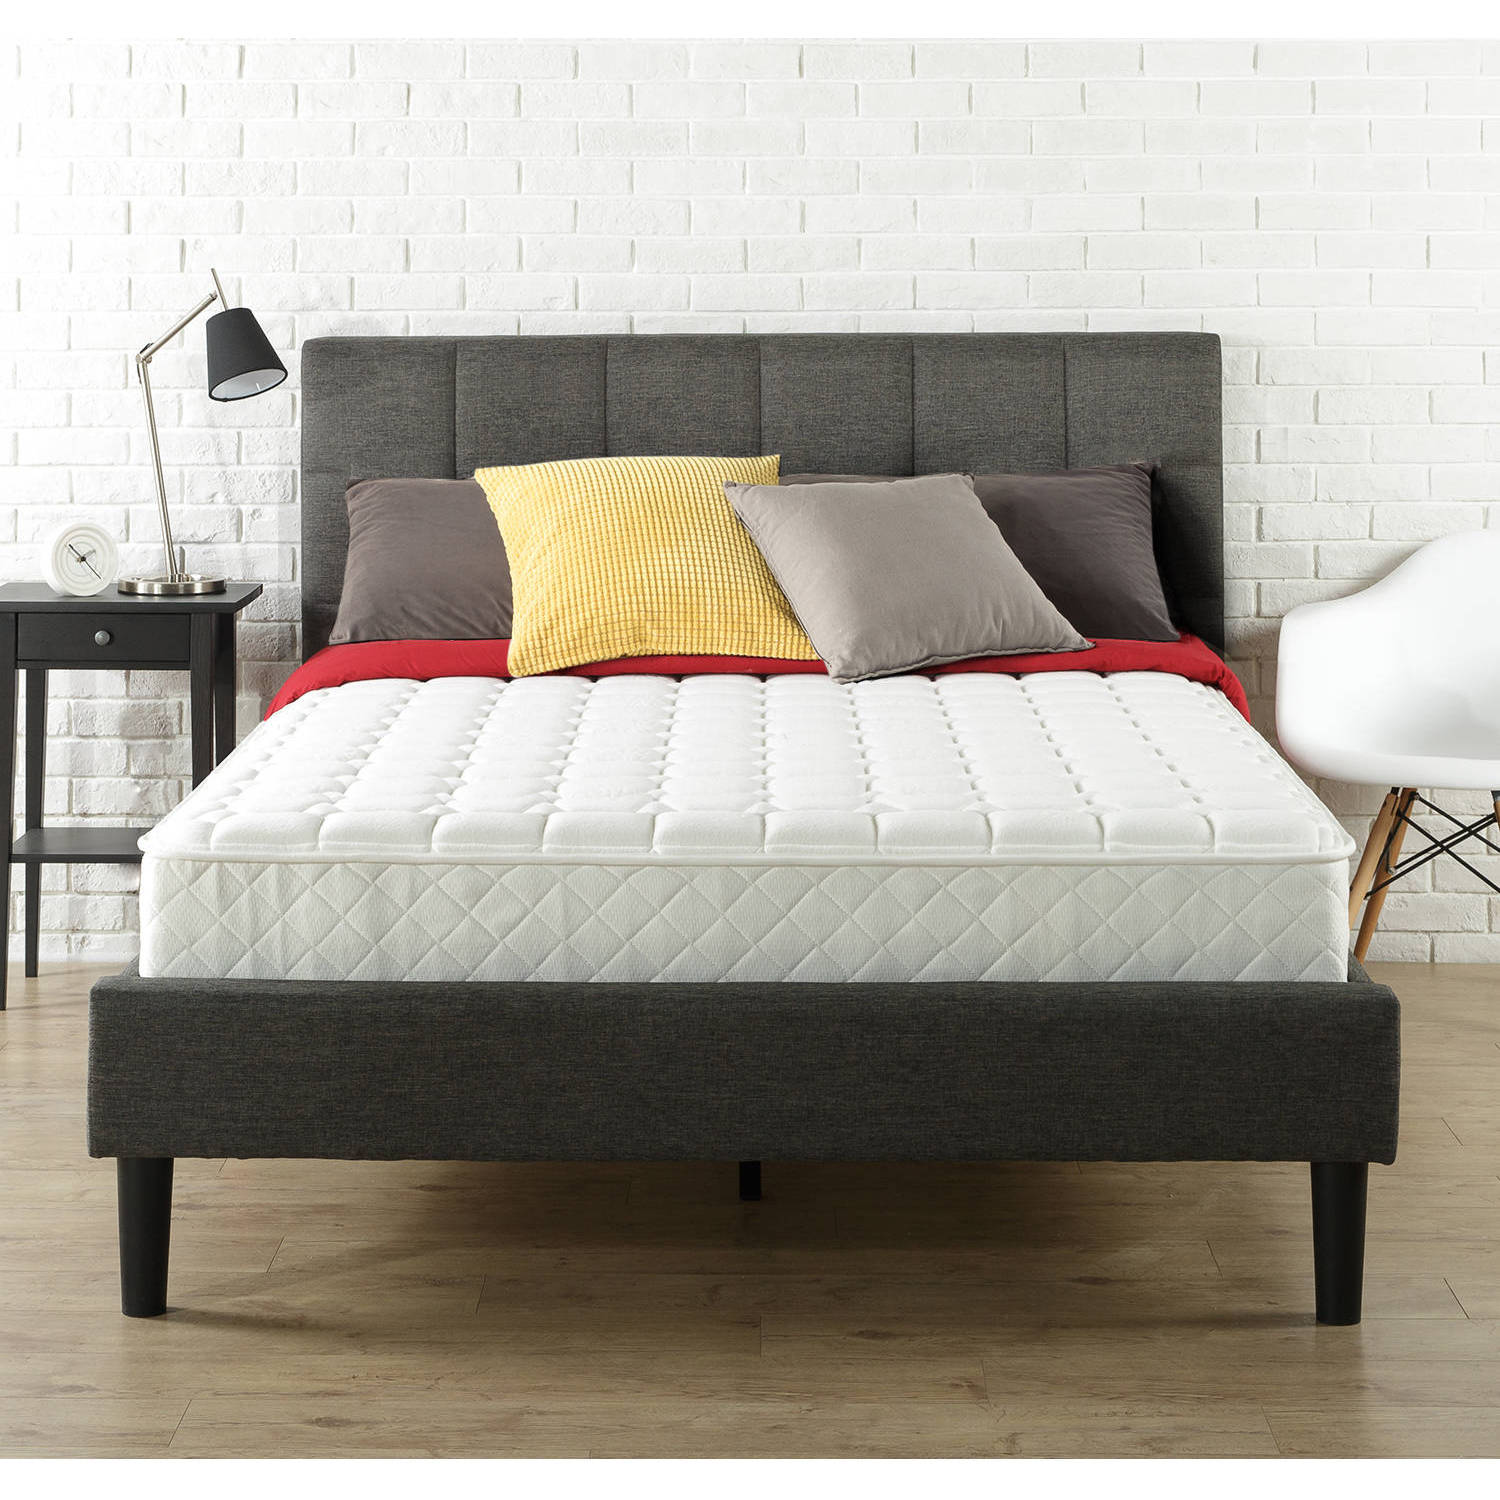 Slumber 1 - 8'' Mattress-In-a-Box, Multiple Sizes